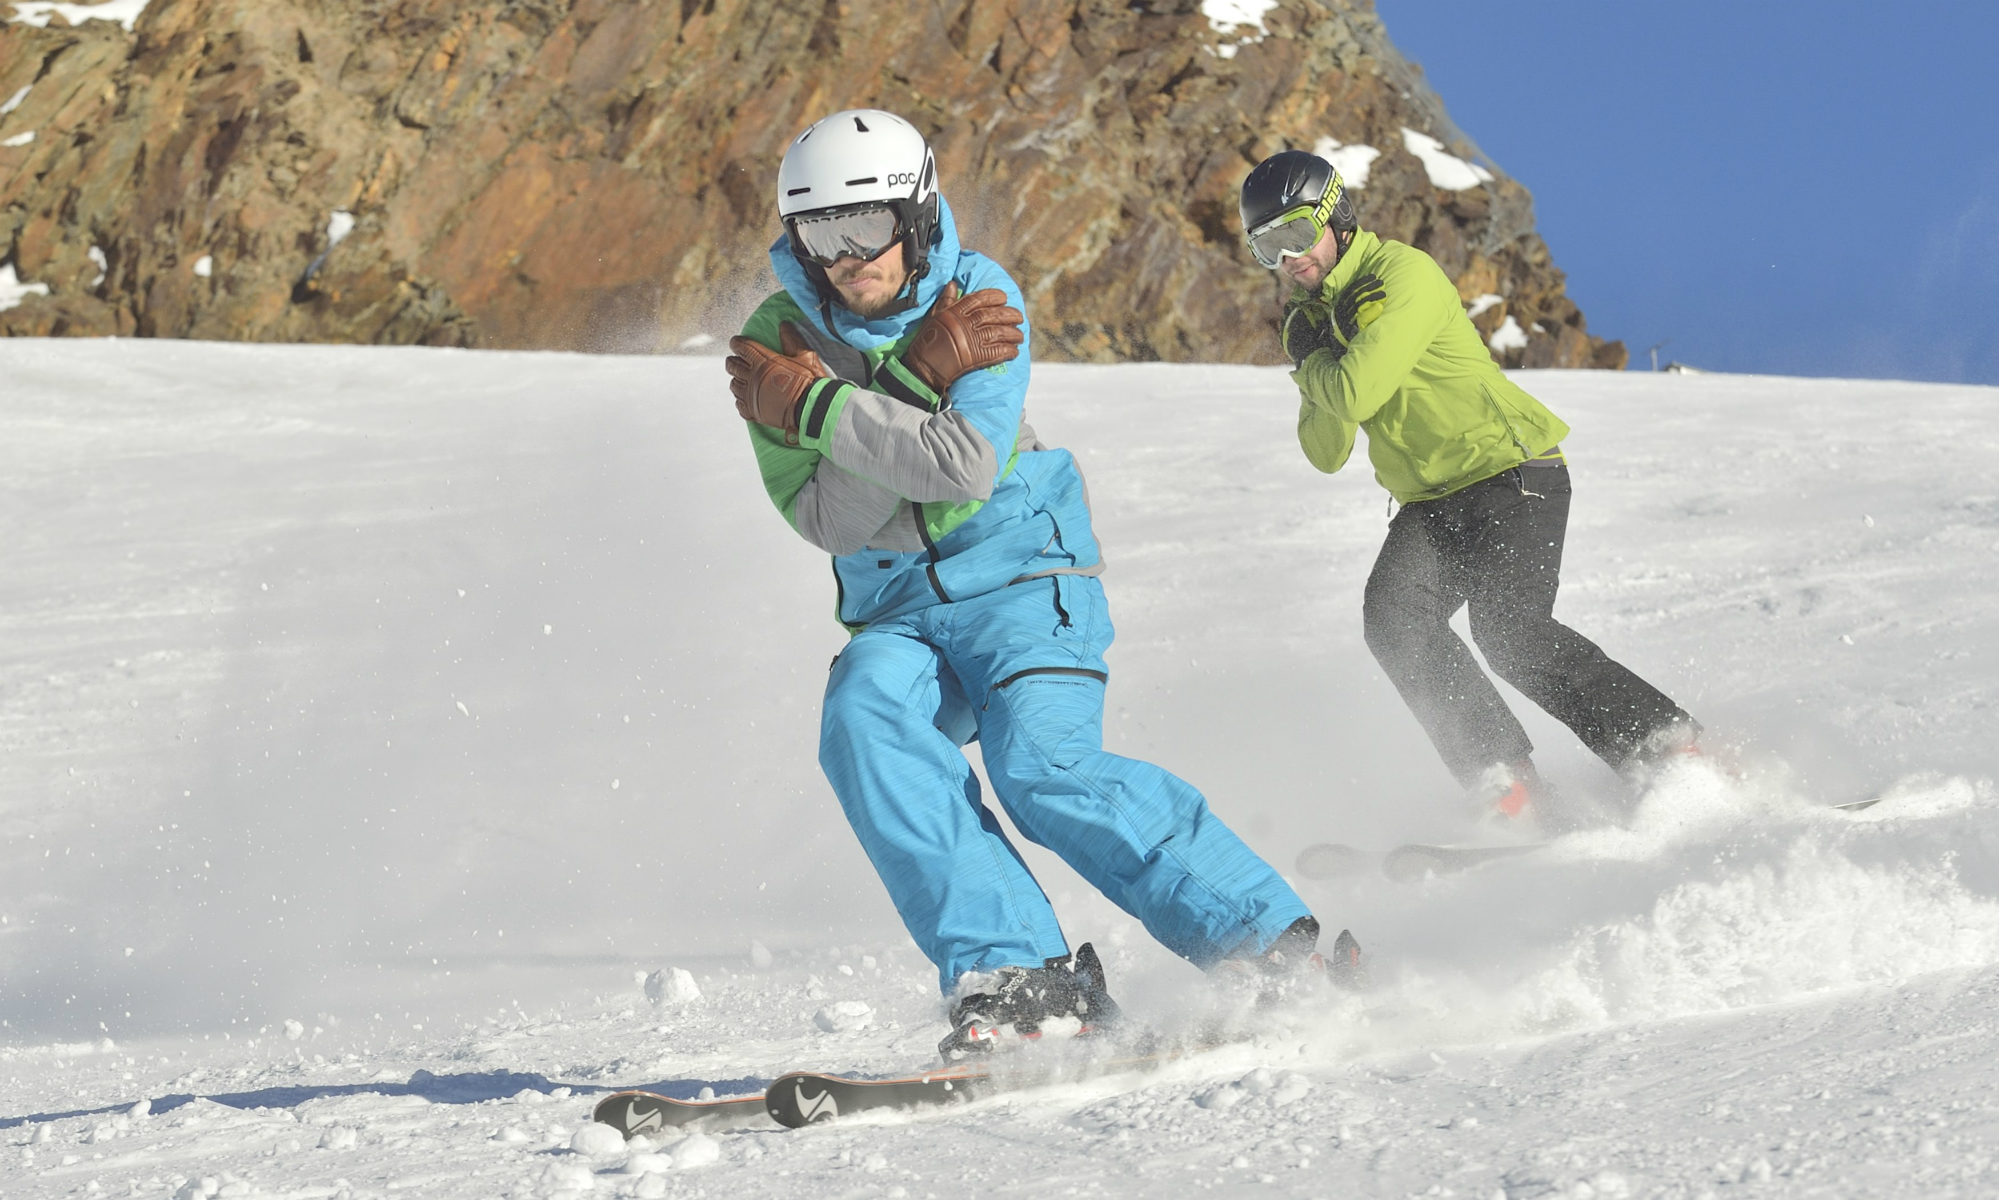 Two skiers practising the weight transfer while skiing.